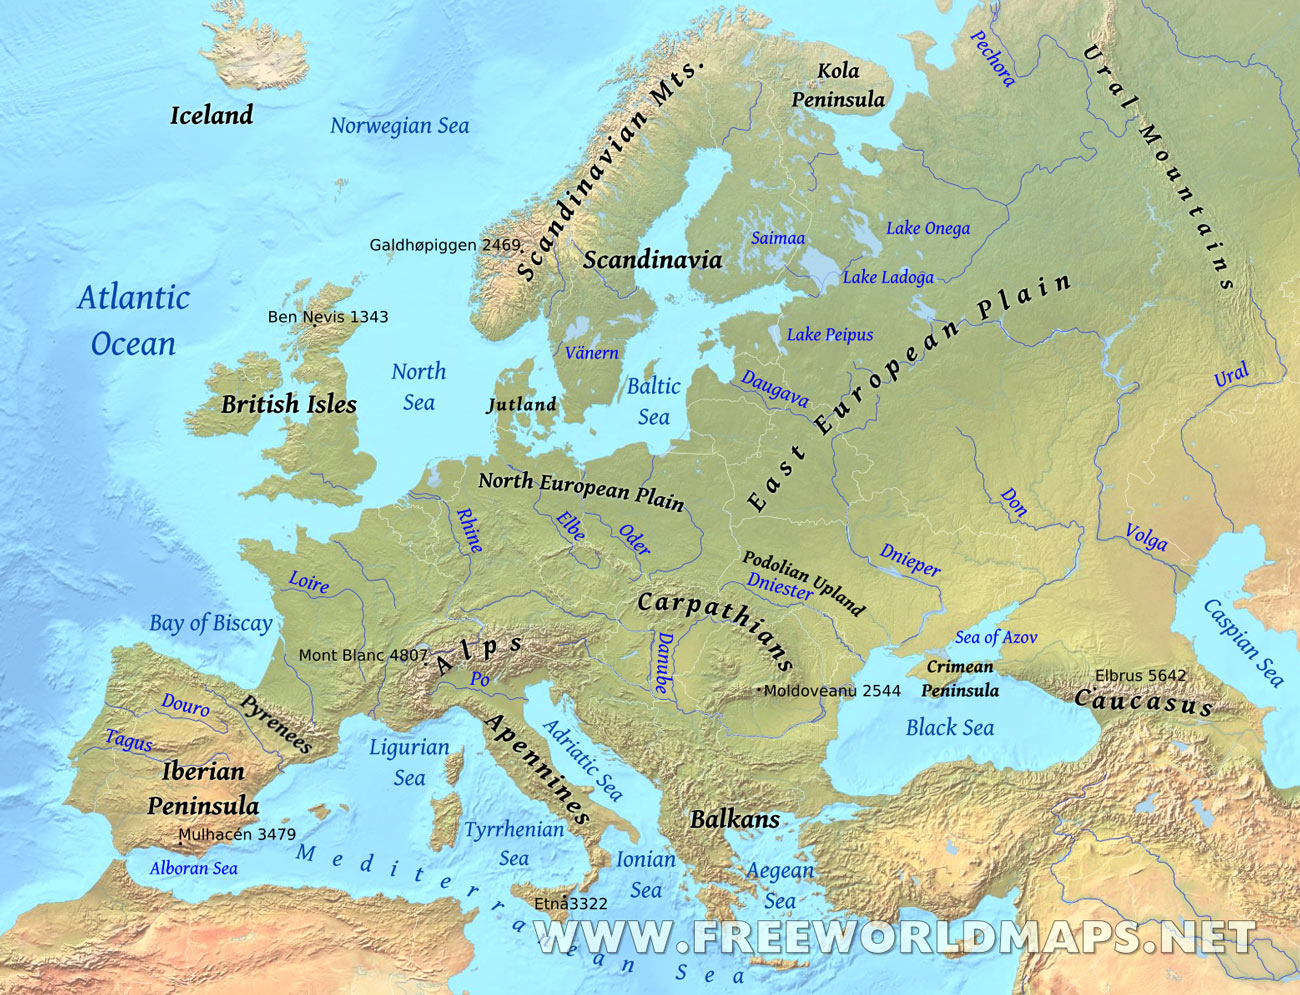 Europe Physical Map Freeworldmapsnet - Us physical features map labeled